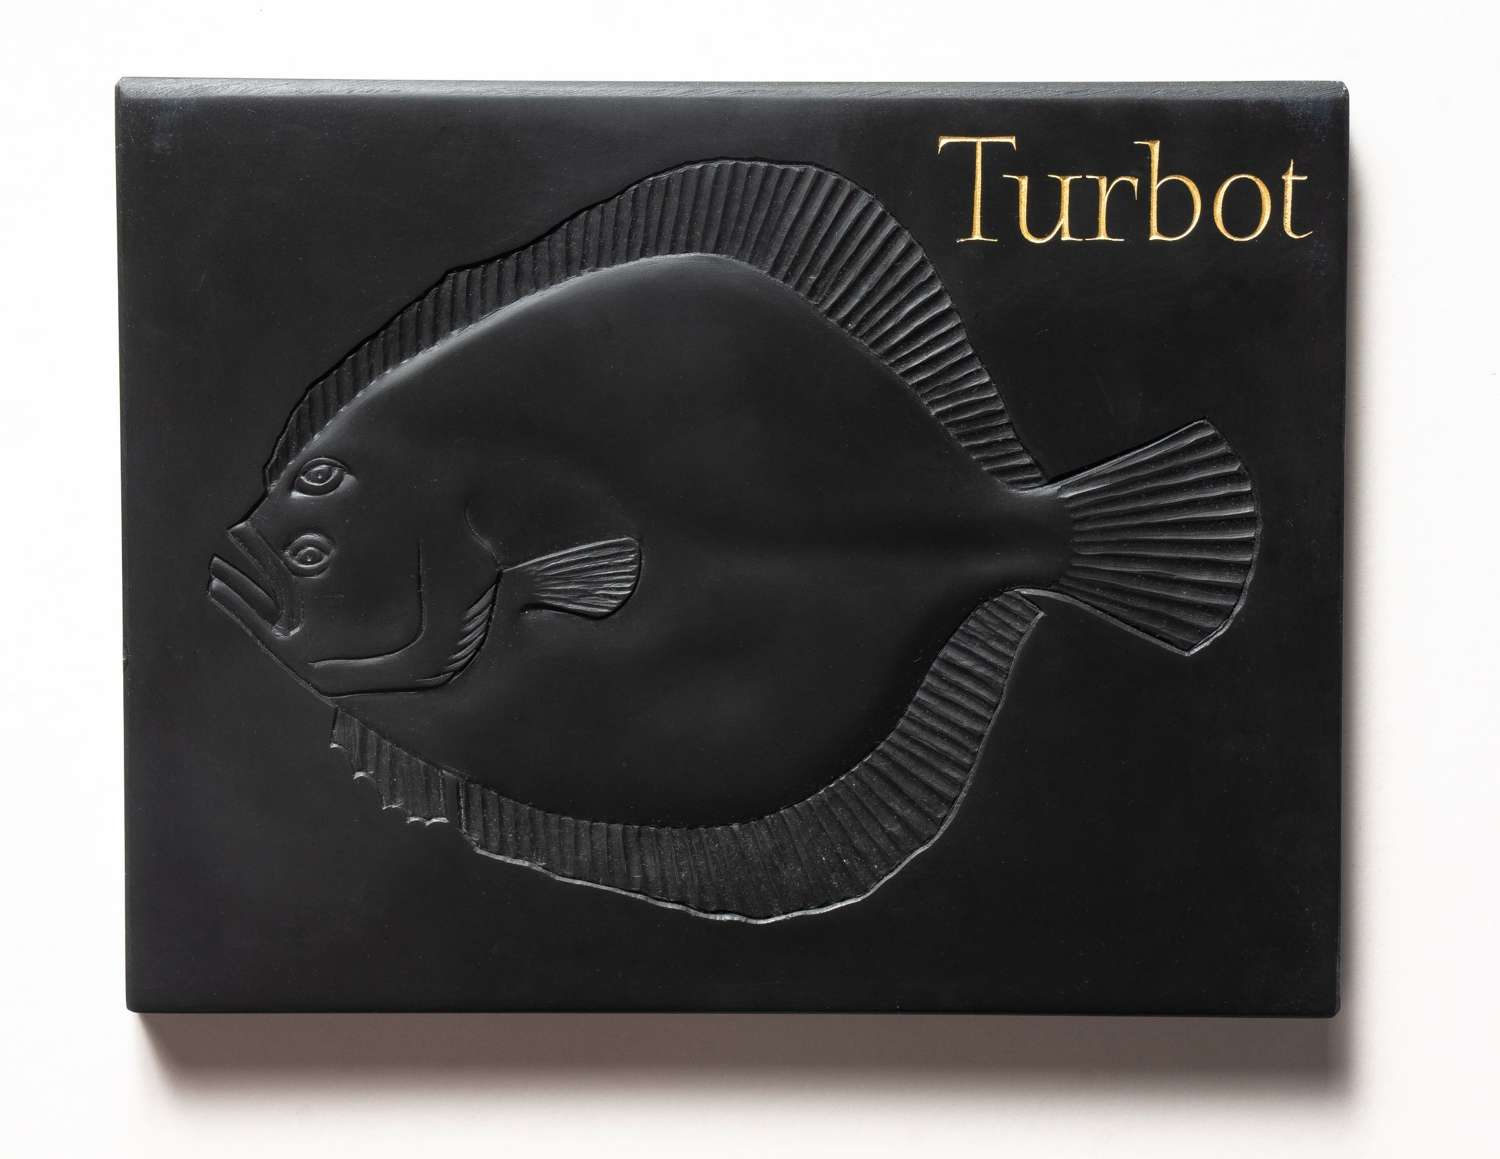 Tracy Steel. A Turbot.